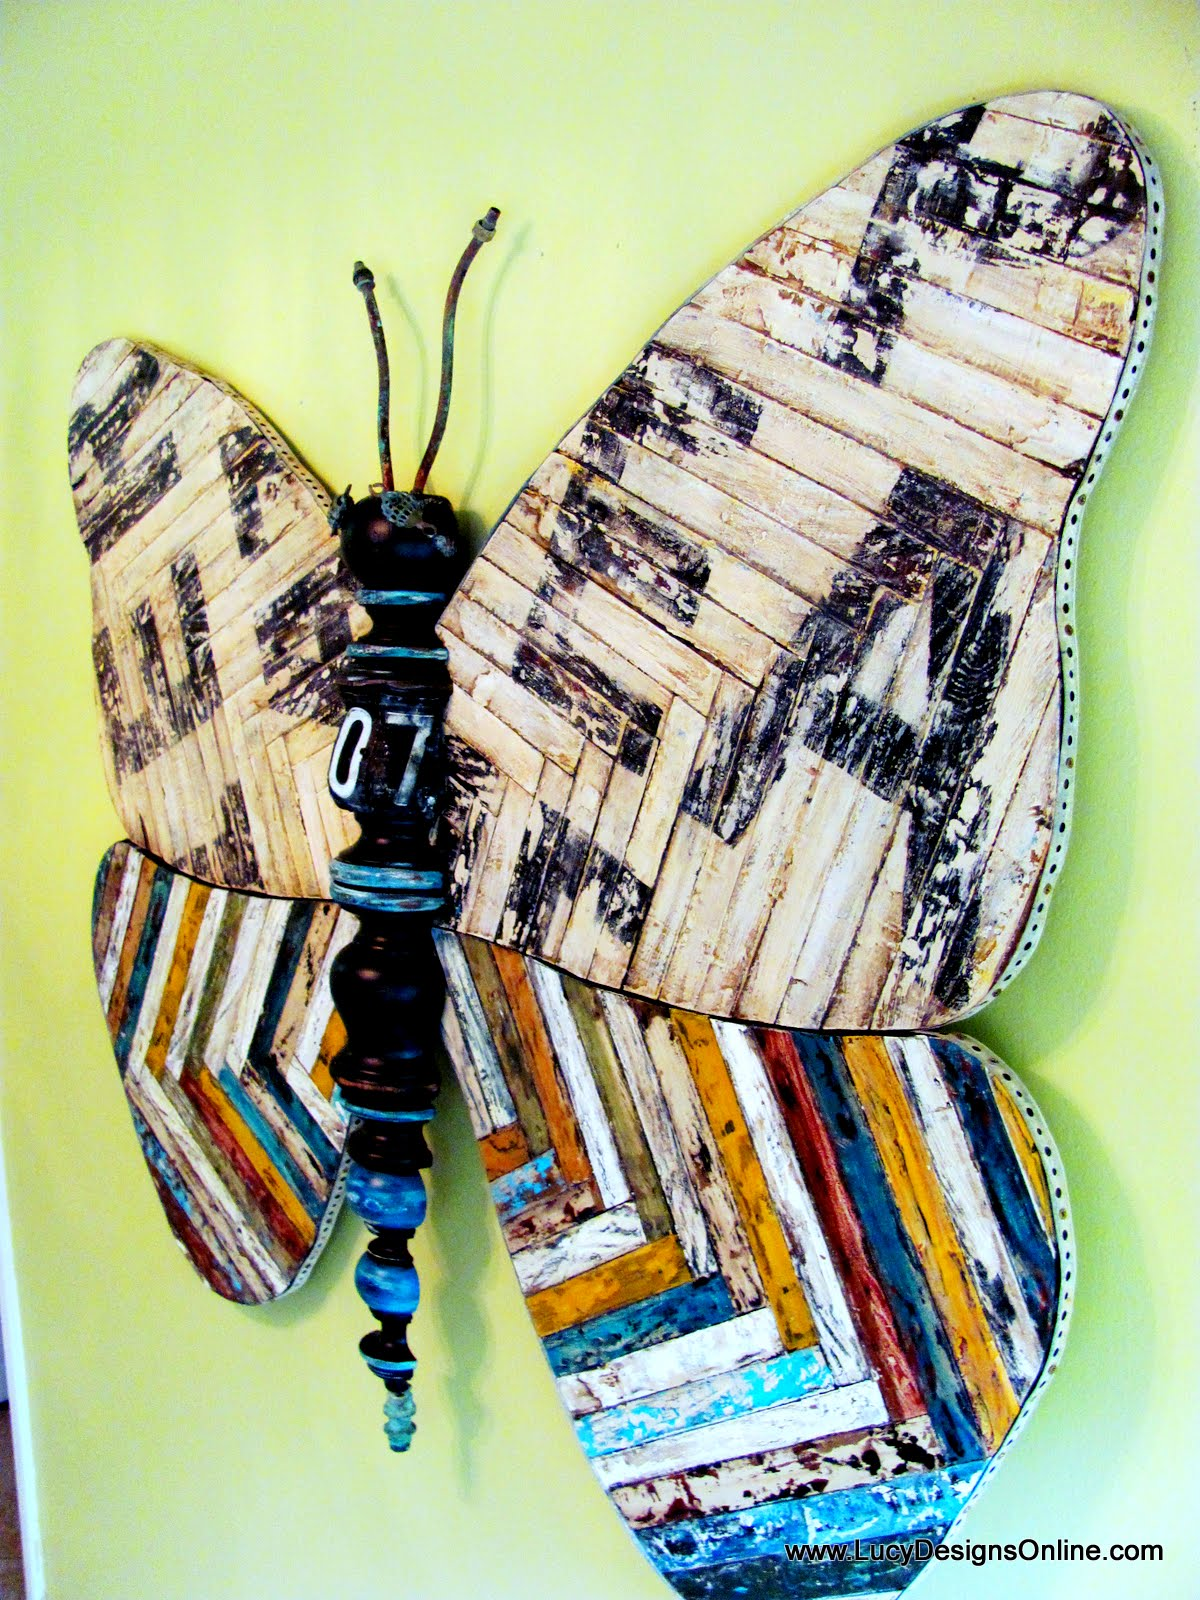 192ed21dd5e Large 5FT Mixed Media Butterfly Art with Reclaimed Wood and Vintage ...